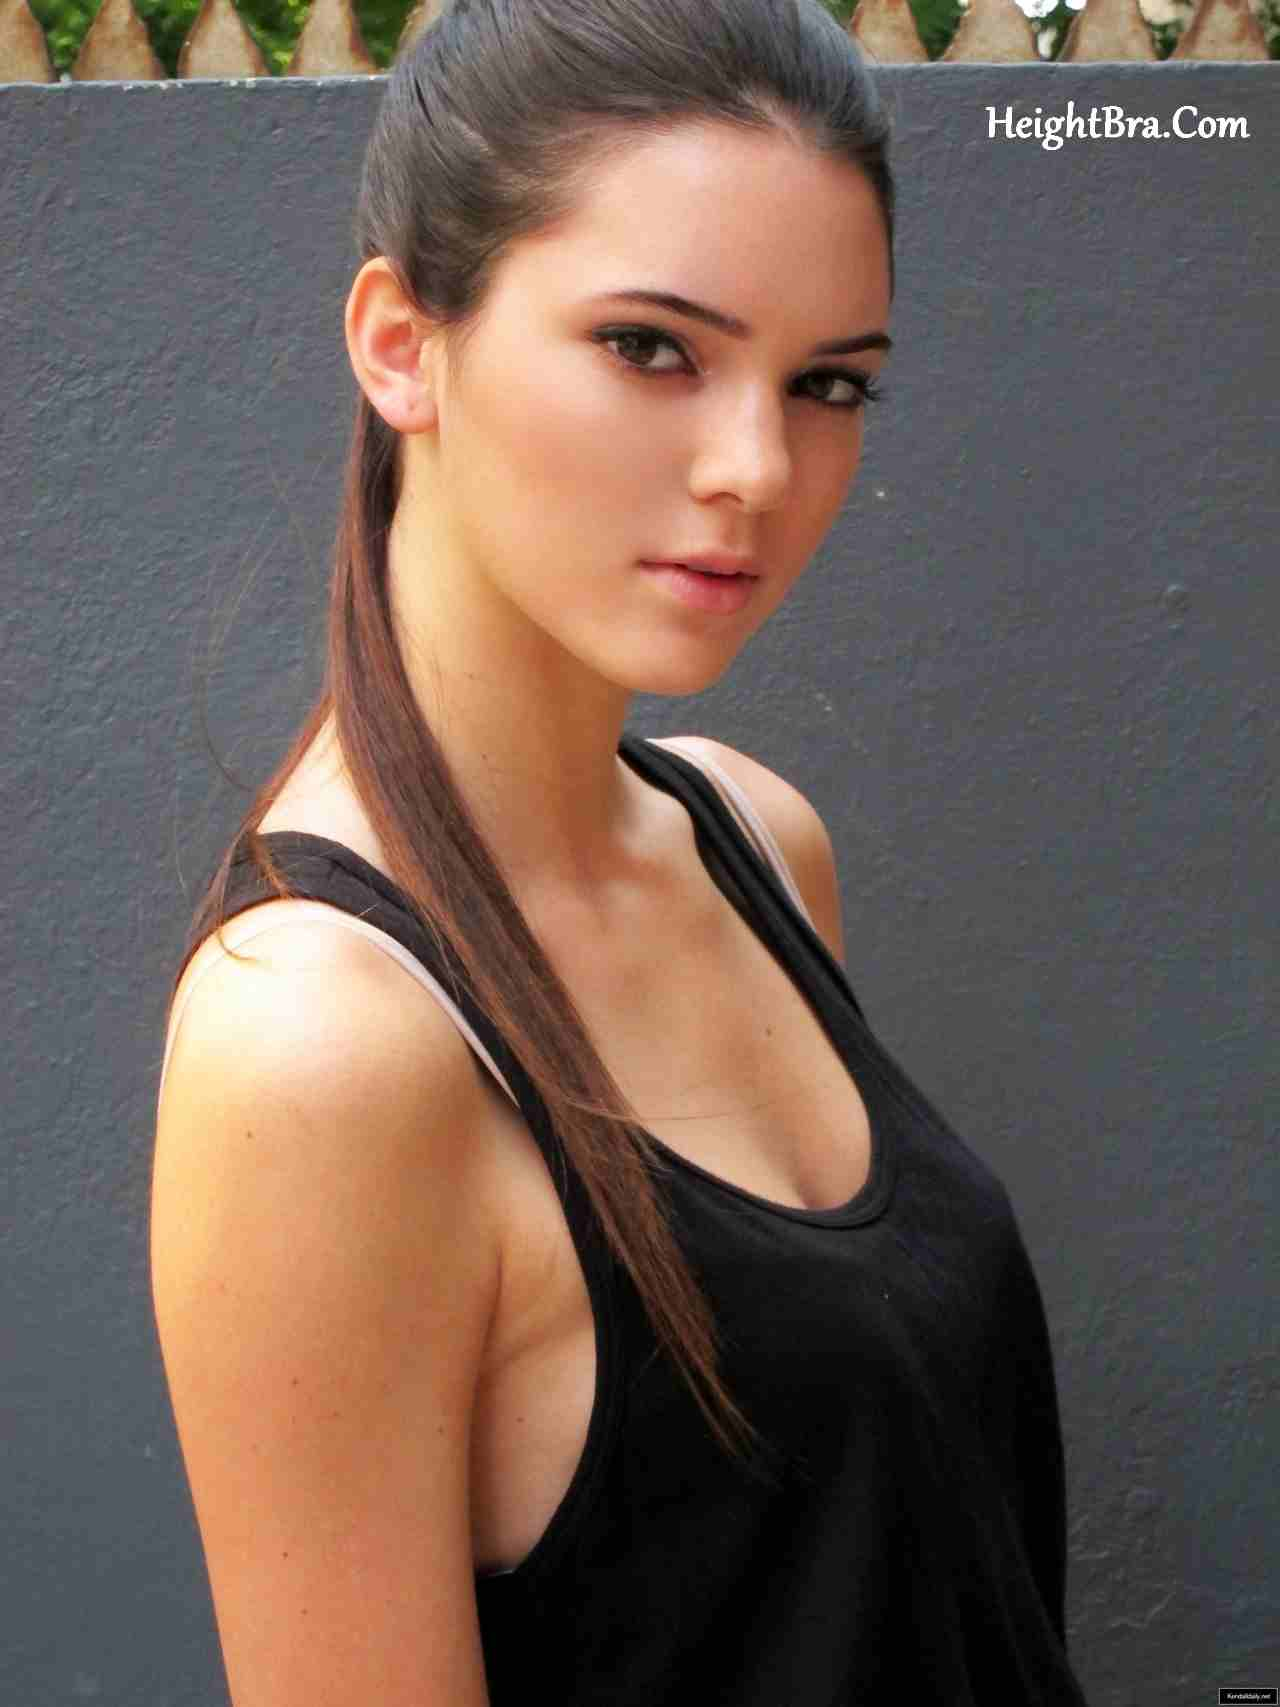 Kendall jenner height weight bra bio figure size for Model height